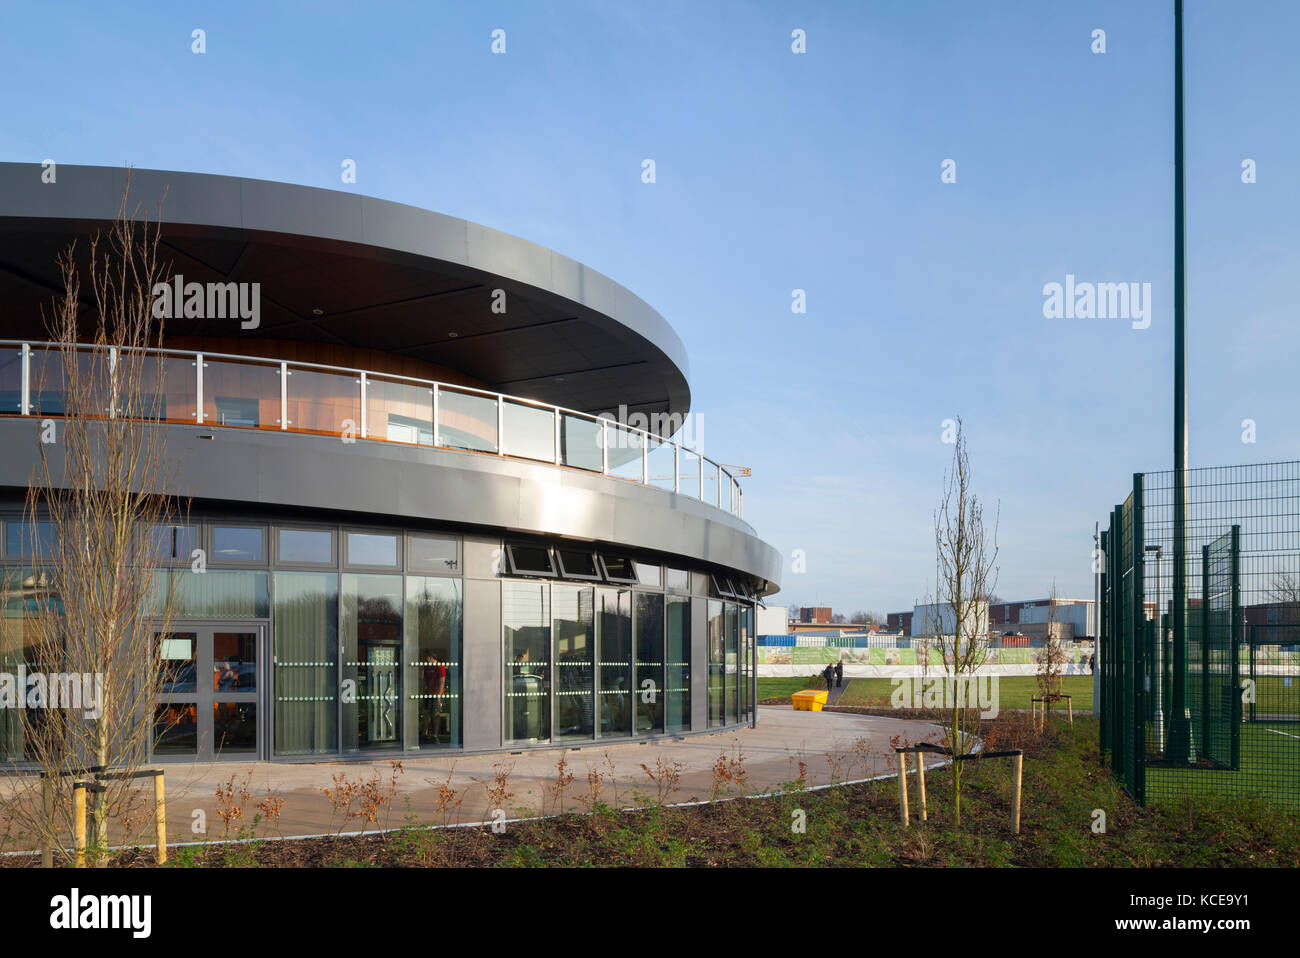 The Hub, College Lane Student Residences, University of Hertfordshire. - Stock Image